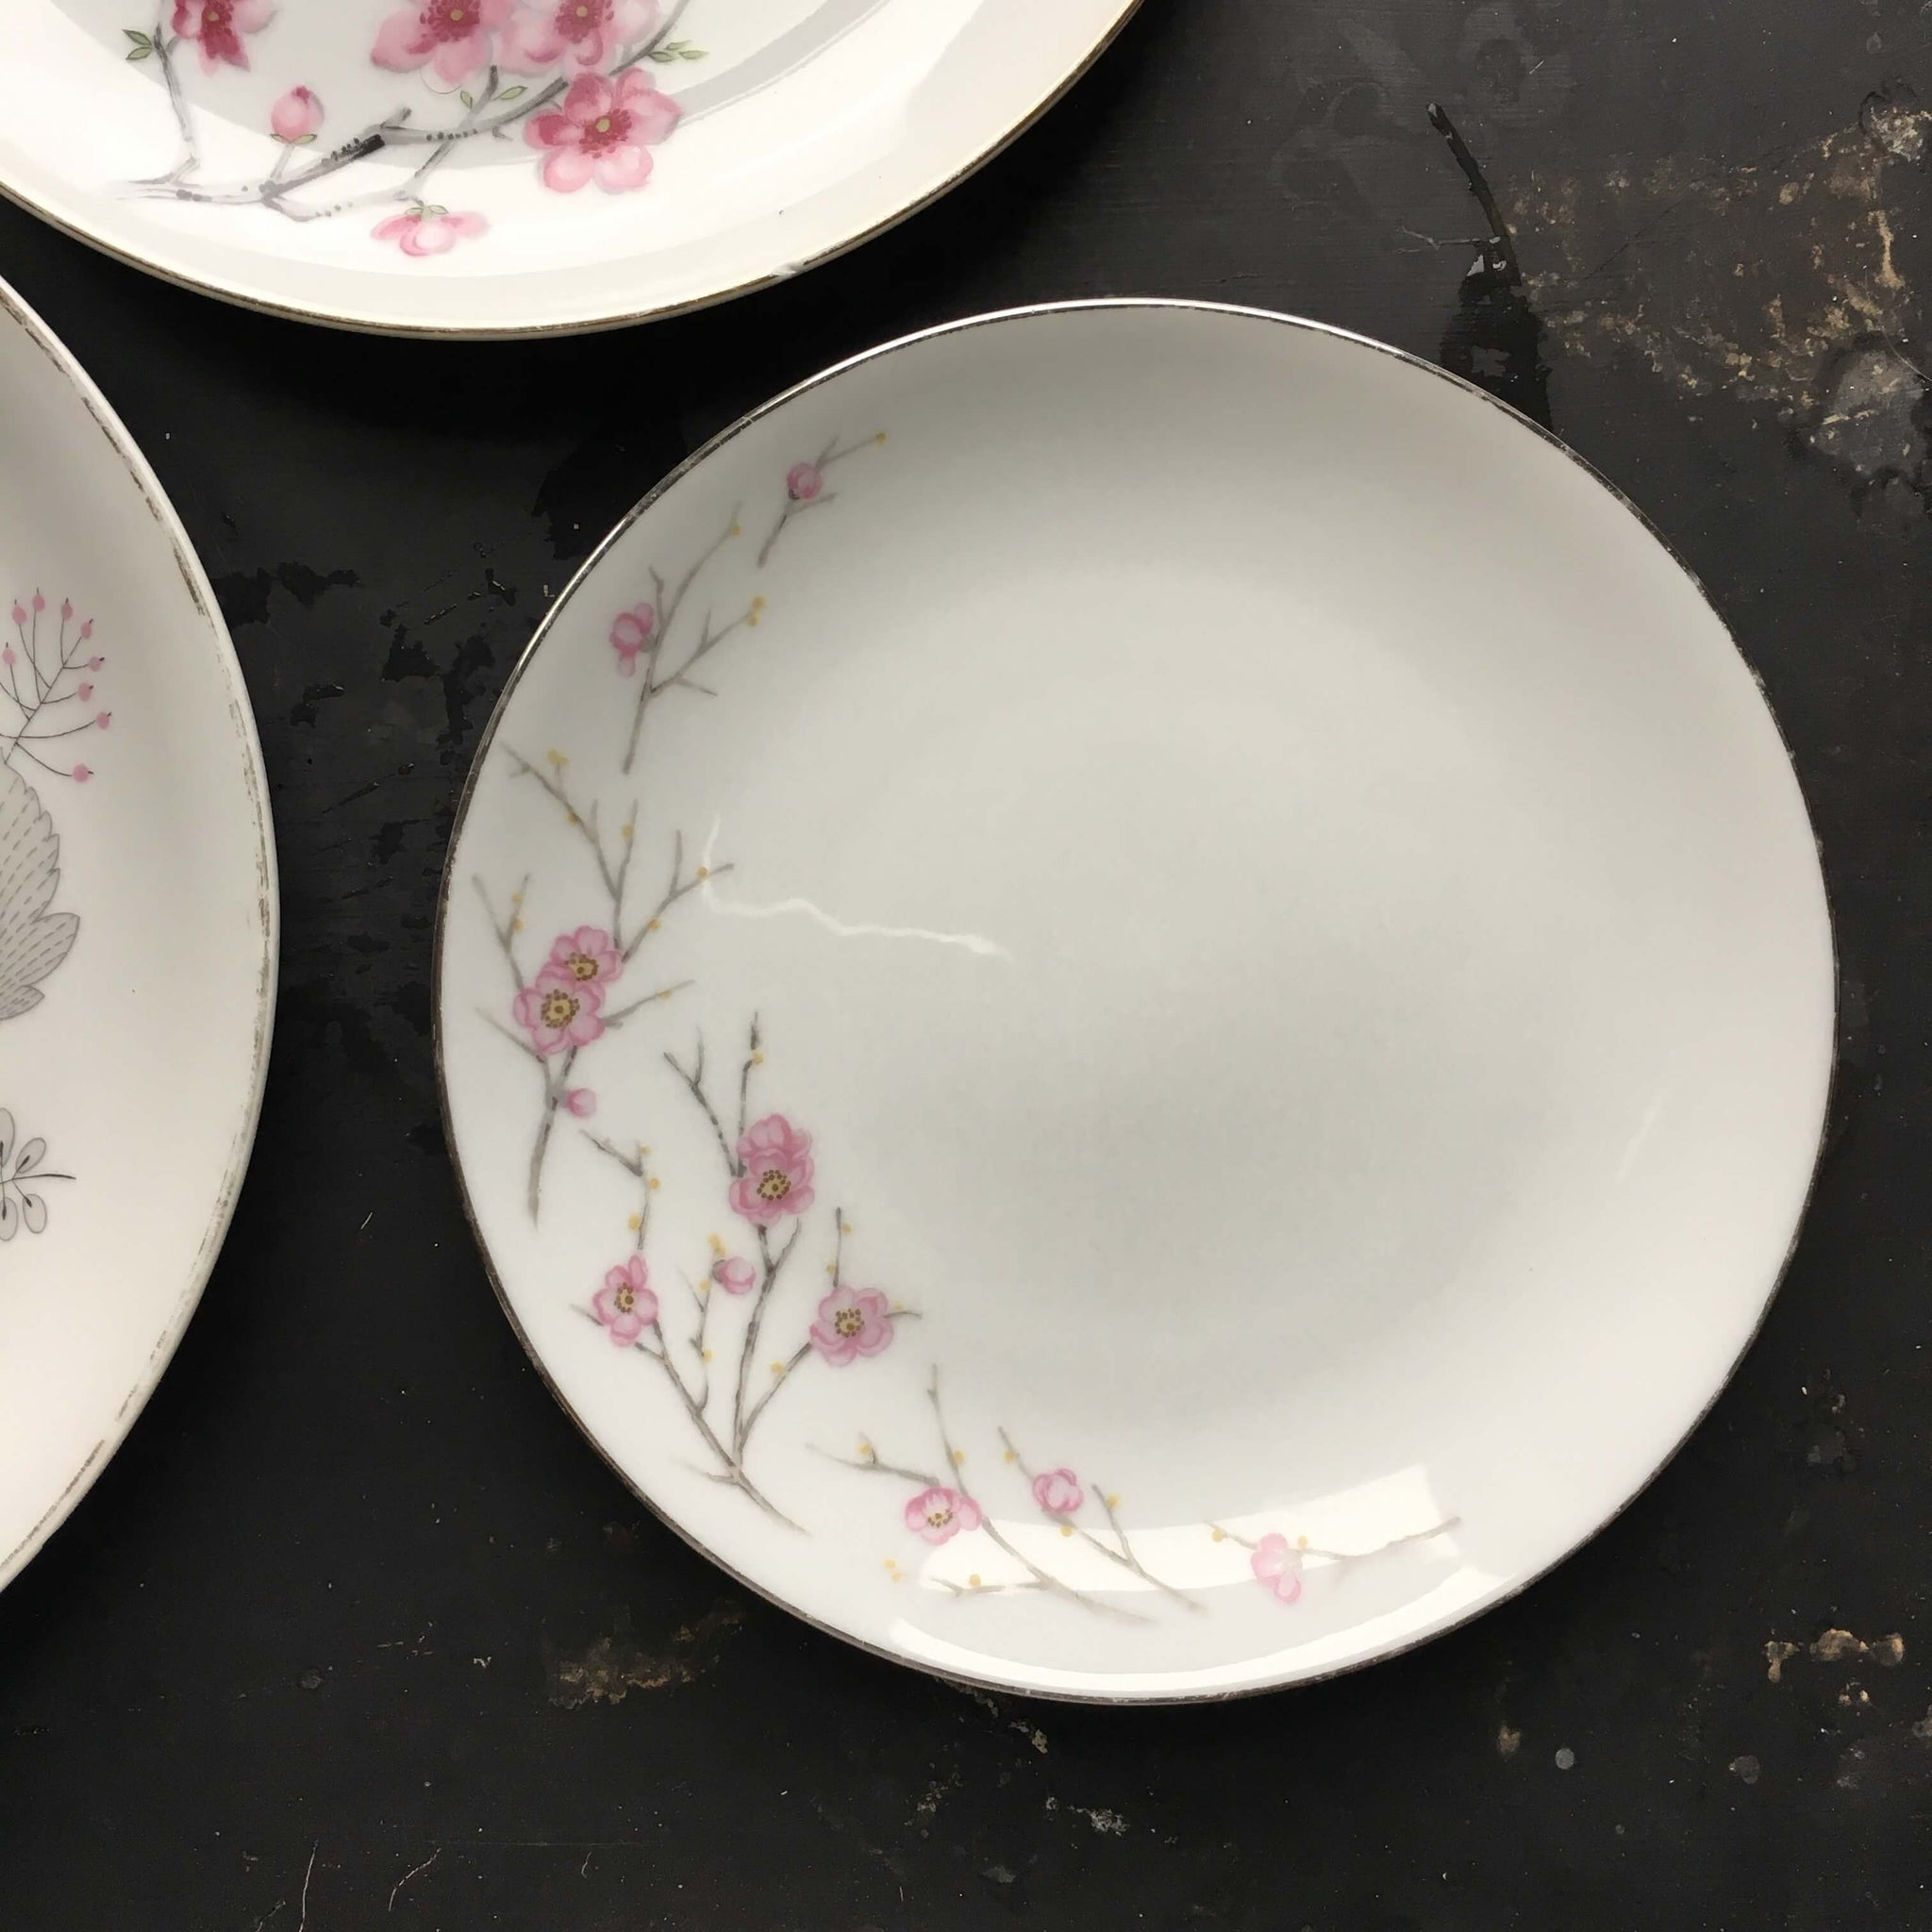 The Cherry Blossom Collection - Vintage Mix and Match Grey and Pink Floral Plates - Set of Three